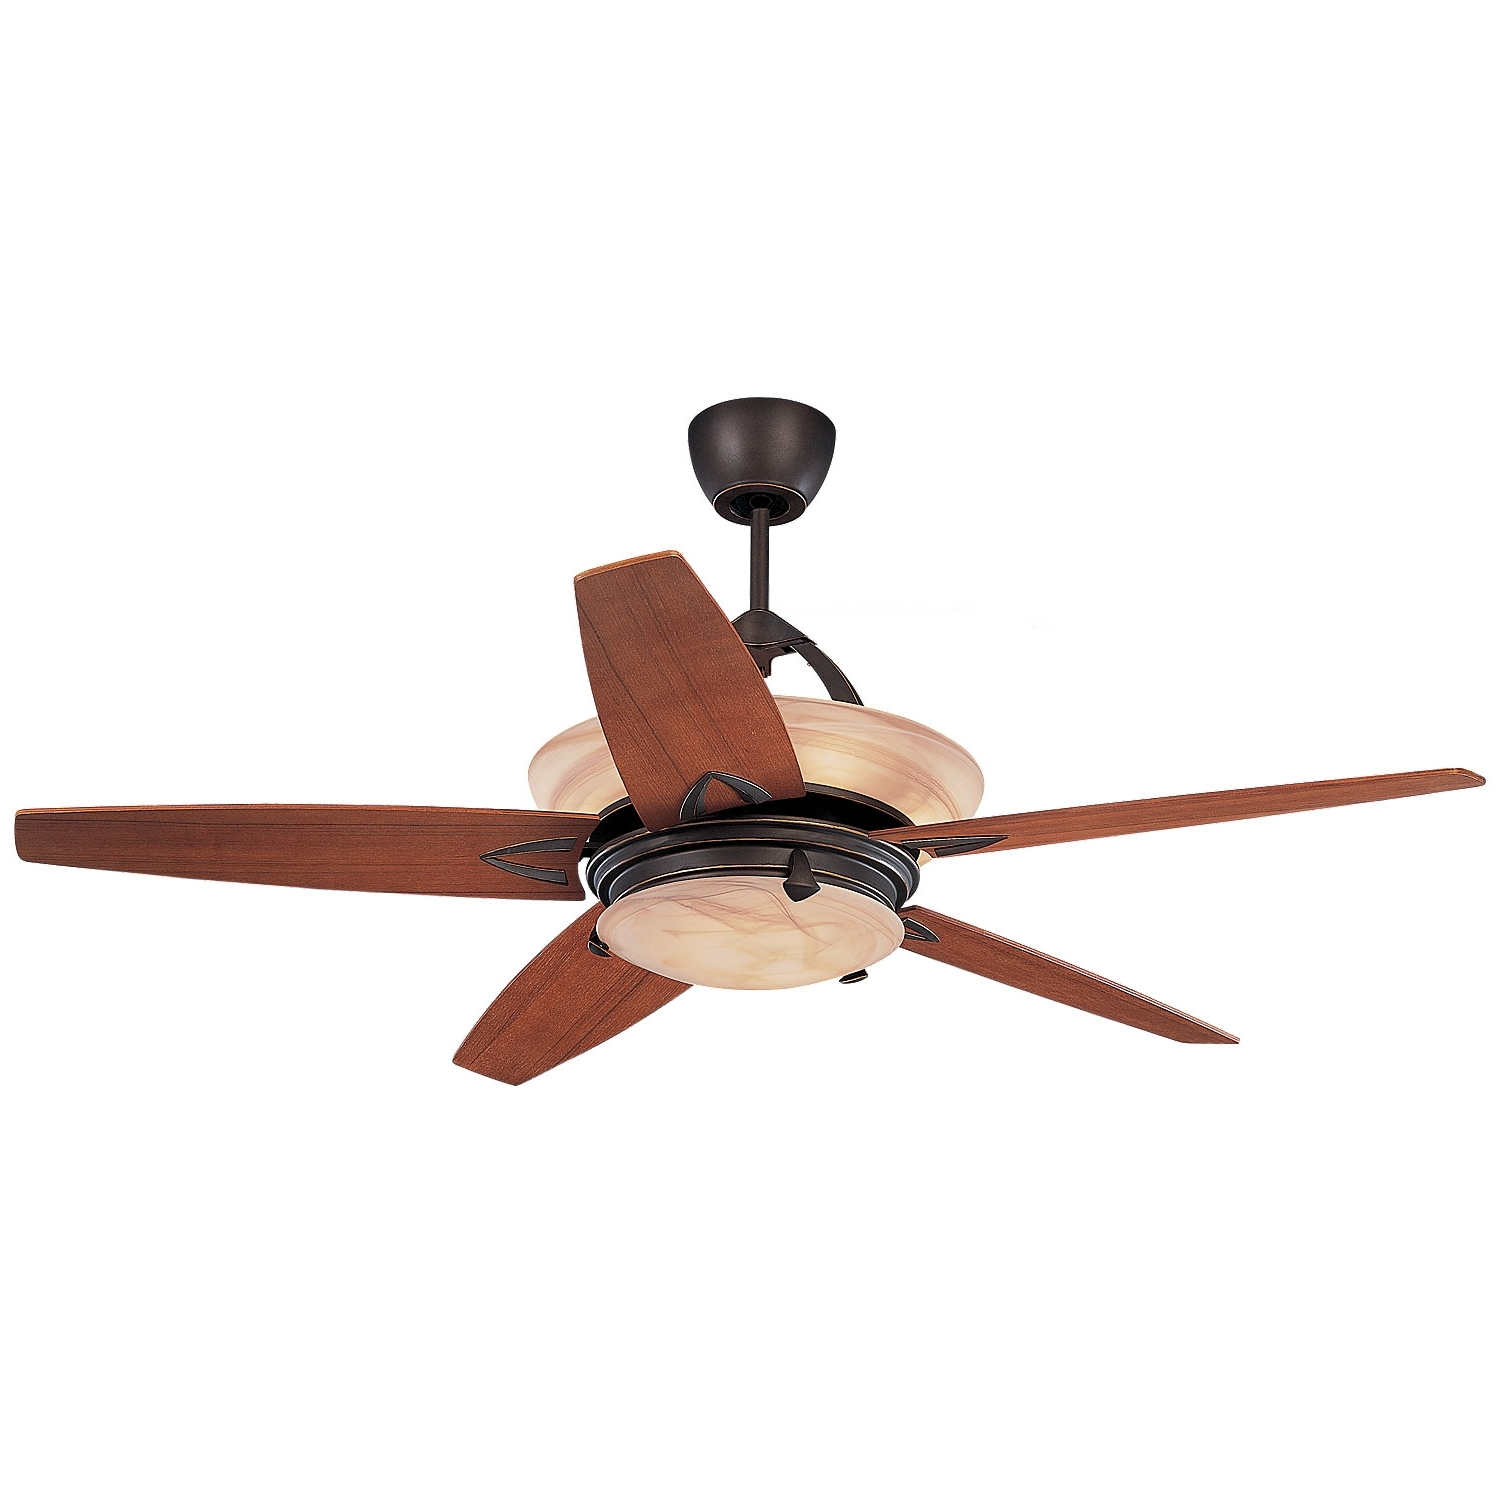 Outdoor Ceiling Fans With Uplights In Latest Monte Carlo Arch Roman Bronze 60 Inch Ceiling Fan With Remote (View 16 of 20)